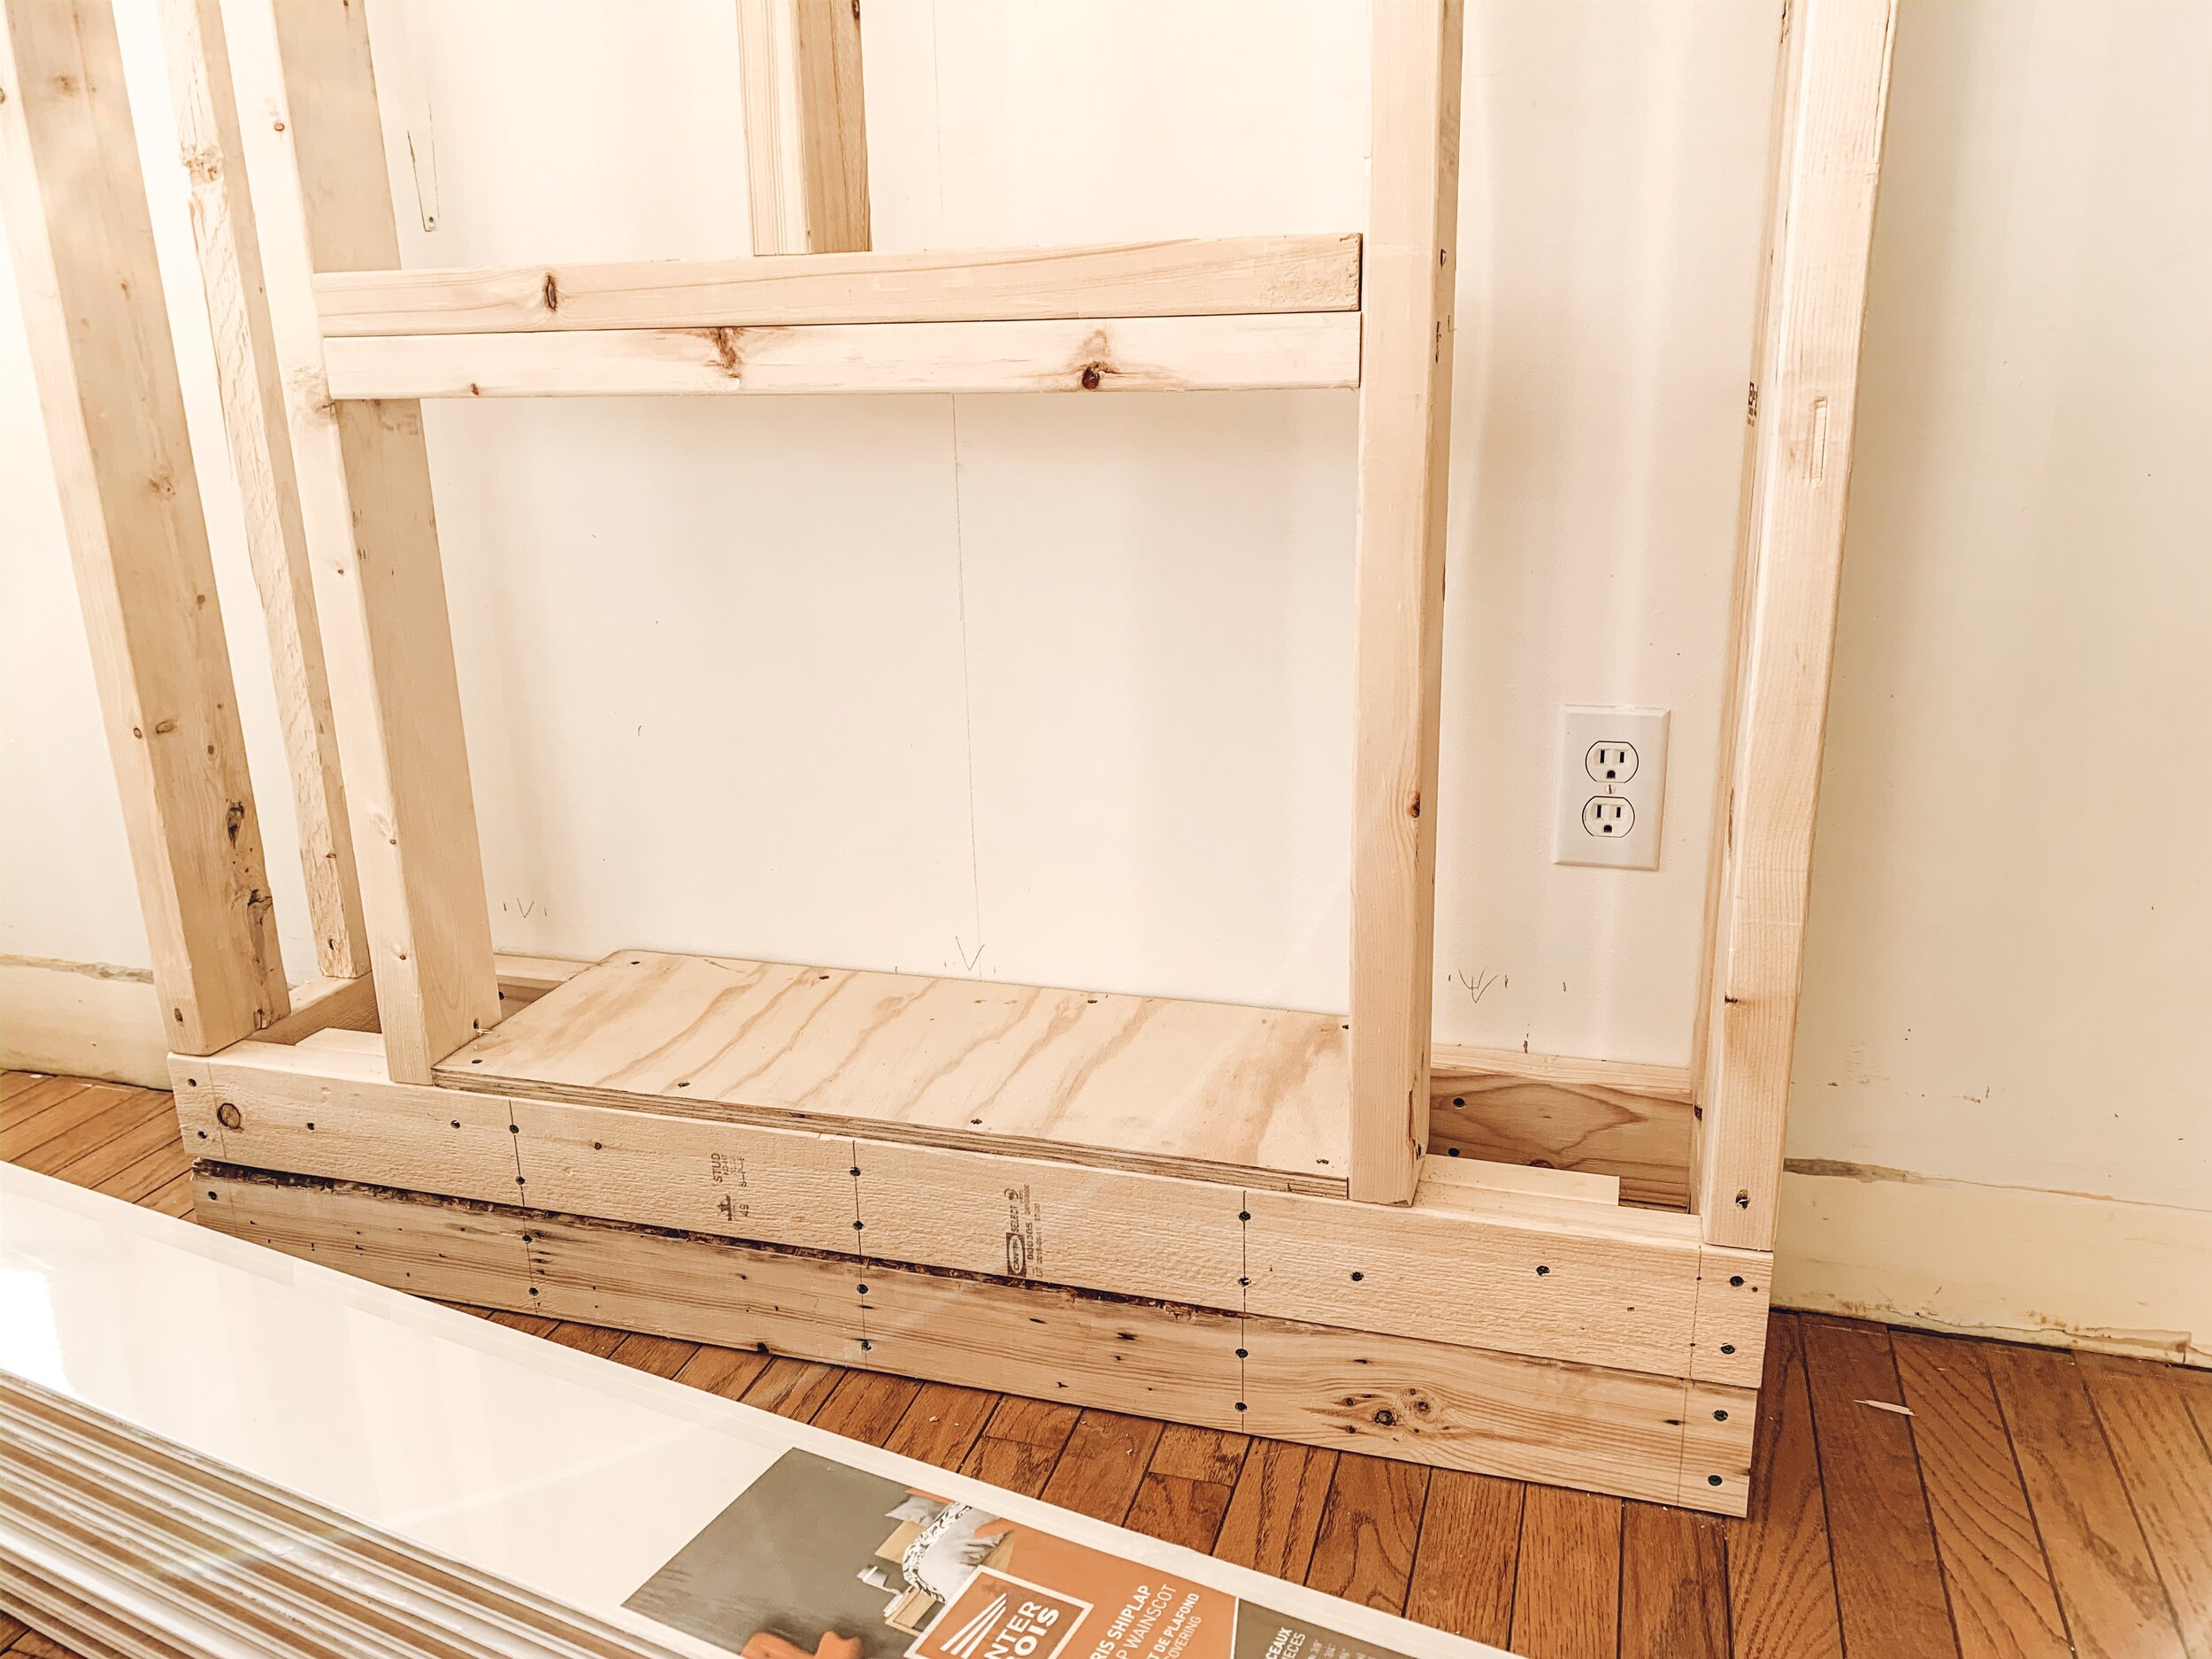 Diy Fireplace Using An Electric Insert Tutorial The Beauty Revival